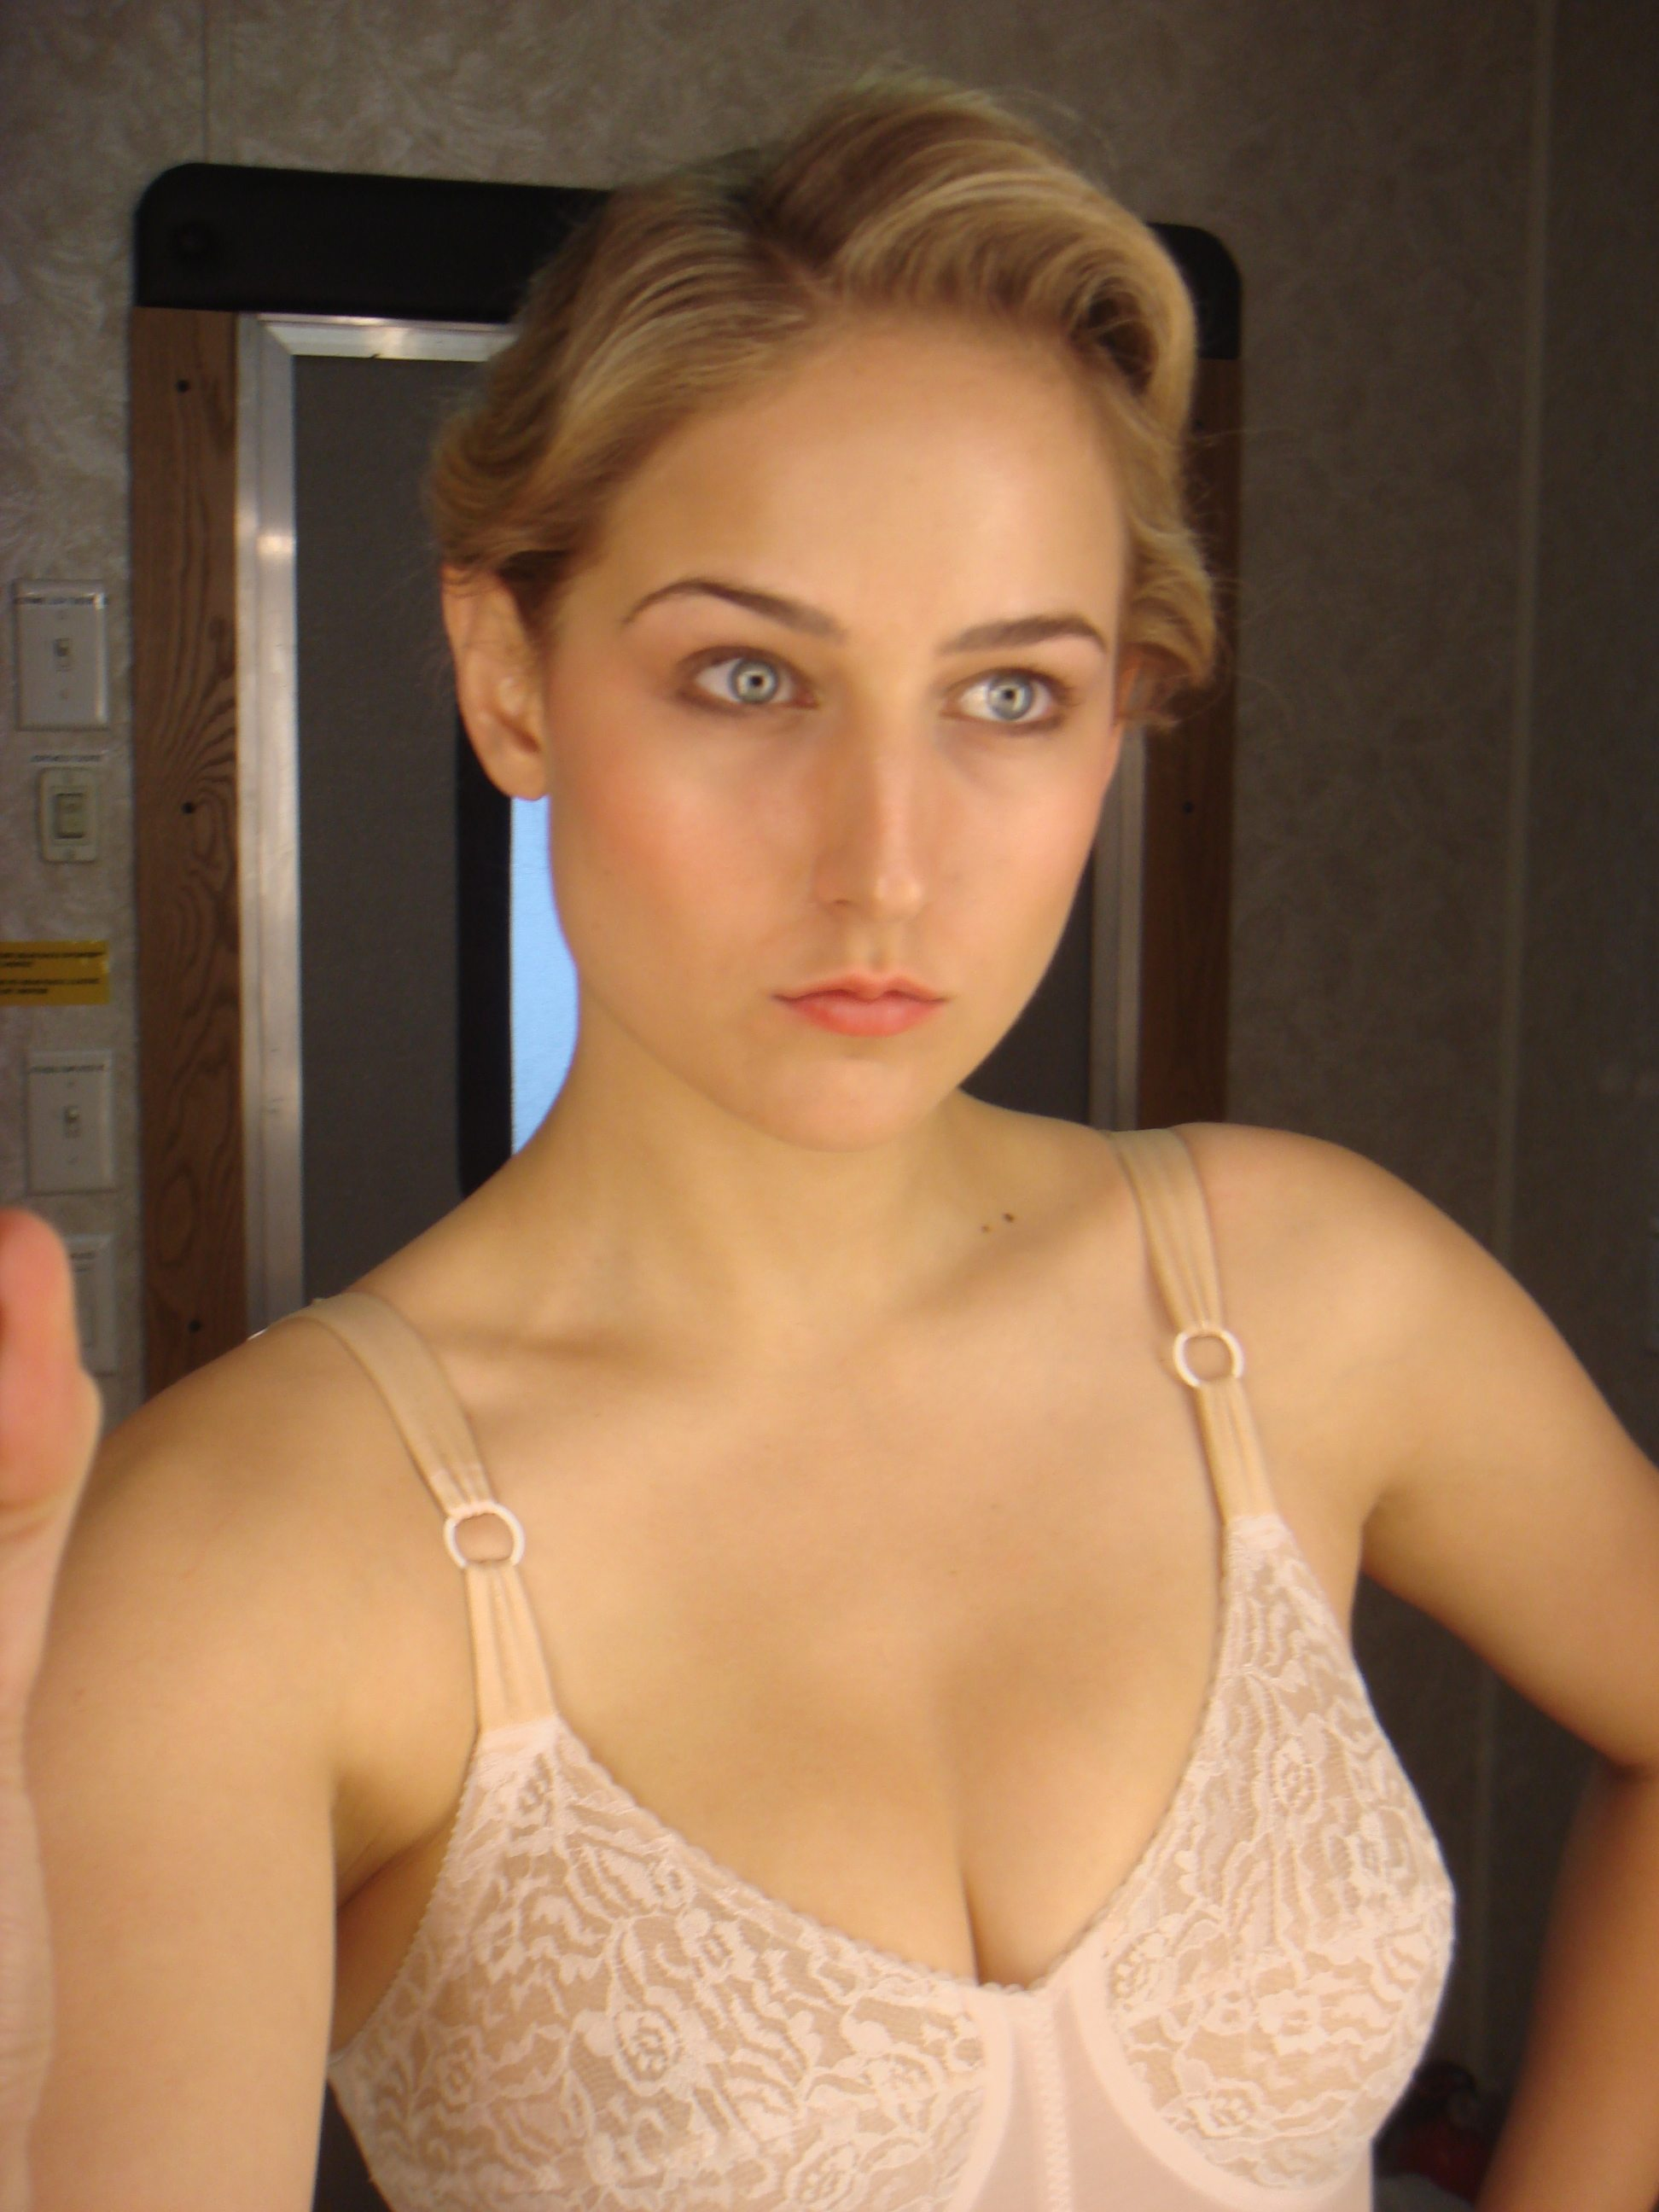 Best nude images of leelee sobieski porn actress photos 651